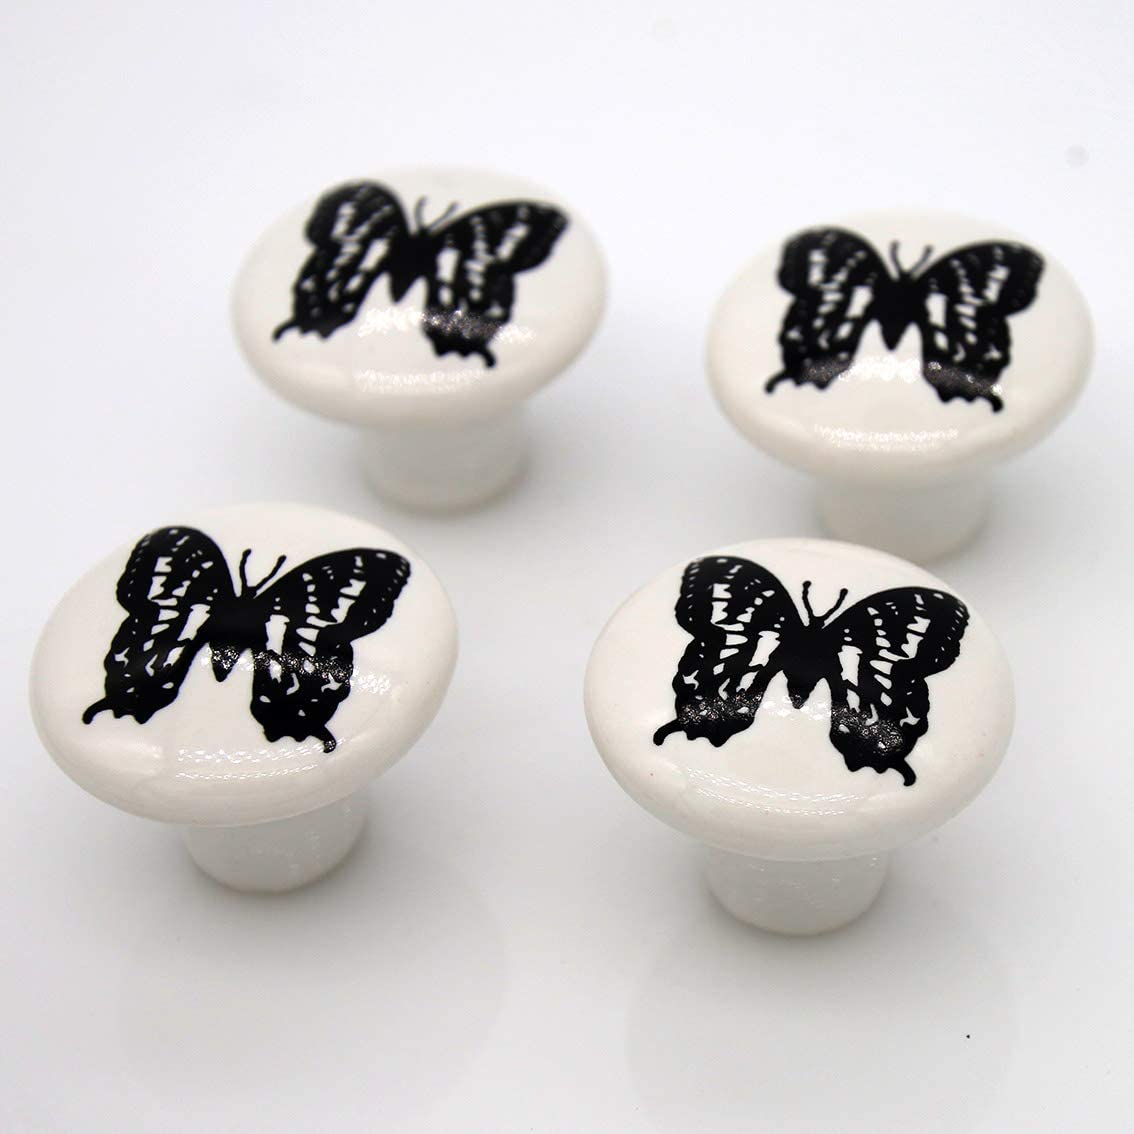 4 PCs Vintage Style Ceramic Round Knobs Handles Pulls with Butterfly Pattern for Cabinet Drawer Door